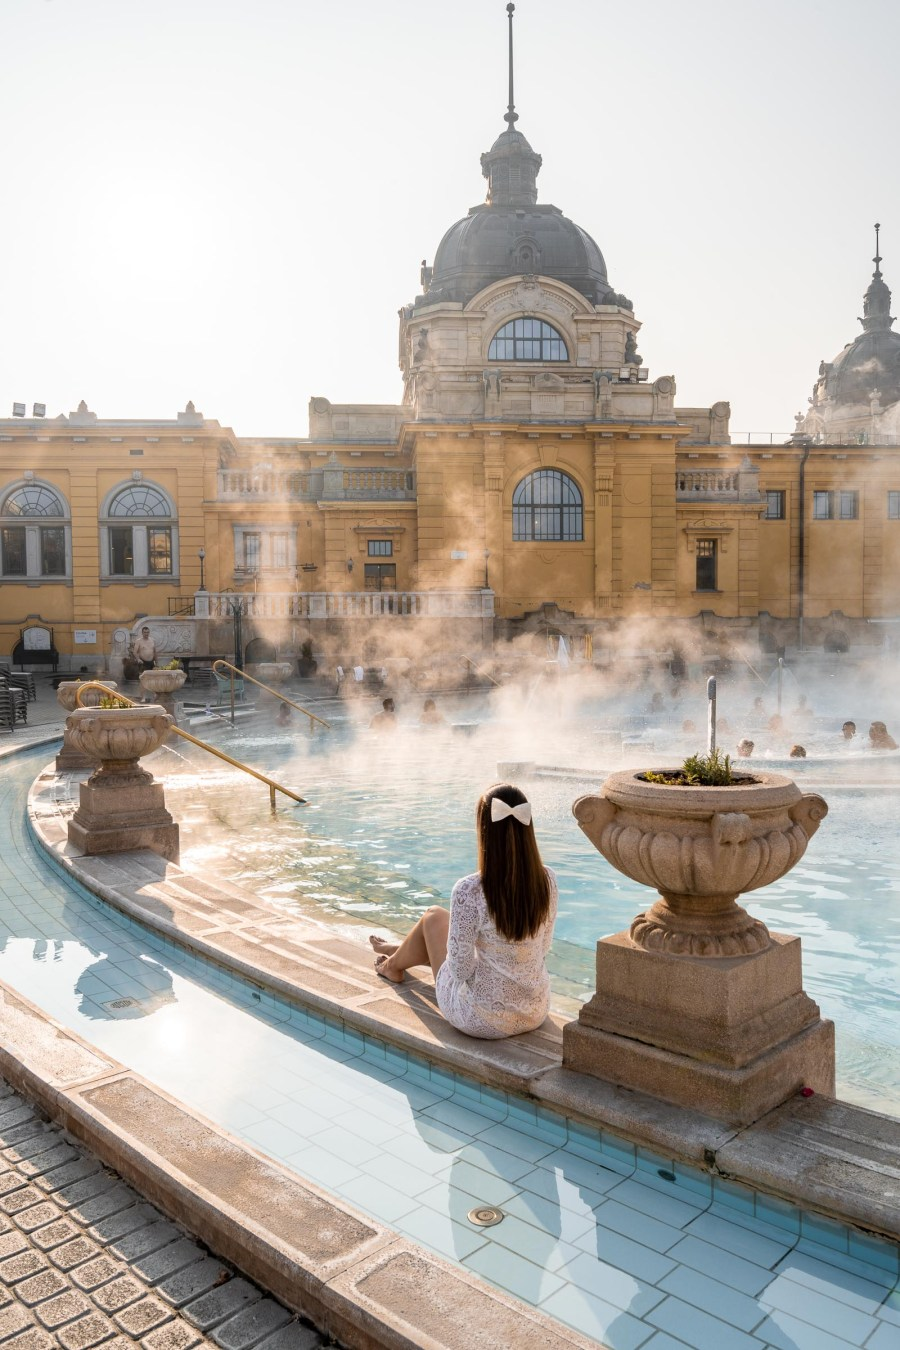 Girl in a white dress sitting at the edge of the pool in the Szechenyi Thermal Bath in Budapest